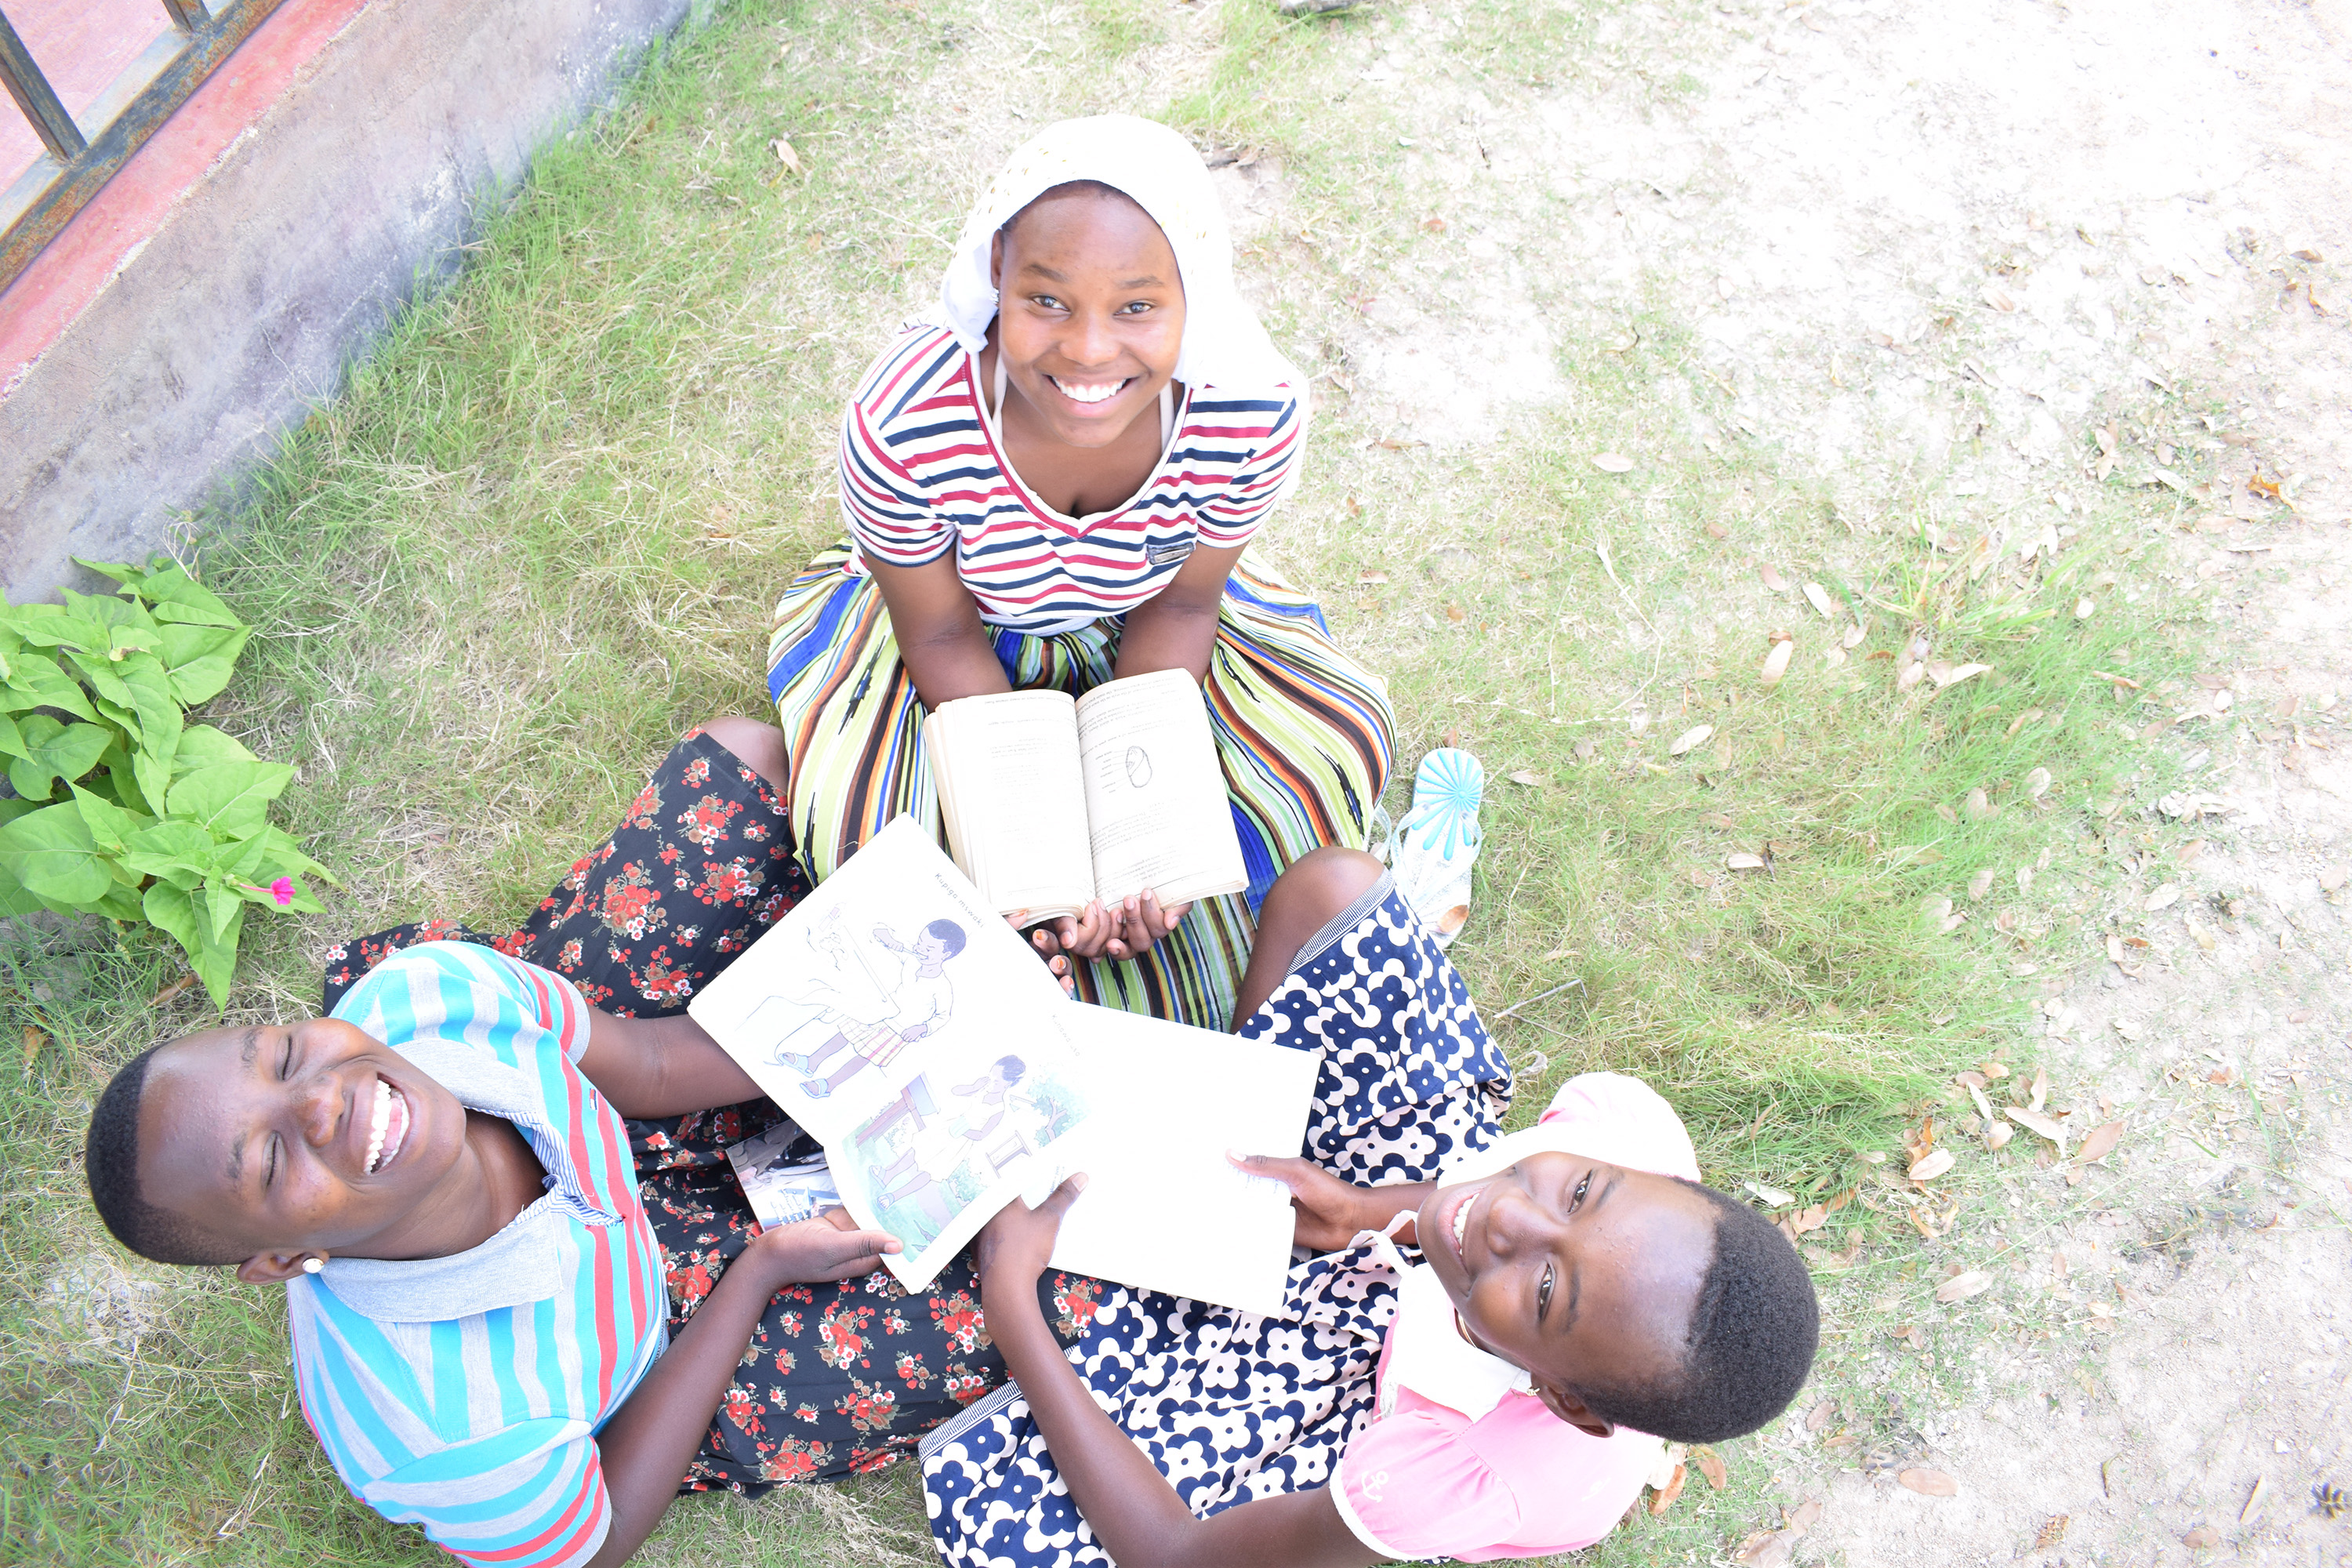 Child well-being_World Vision_Uganda_Education_charity organisation_humanitarian_learning_classes_Uganda_read_write